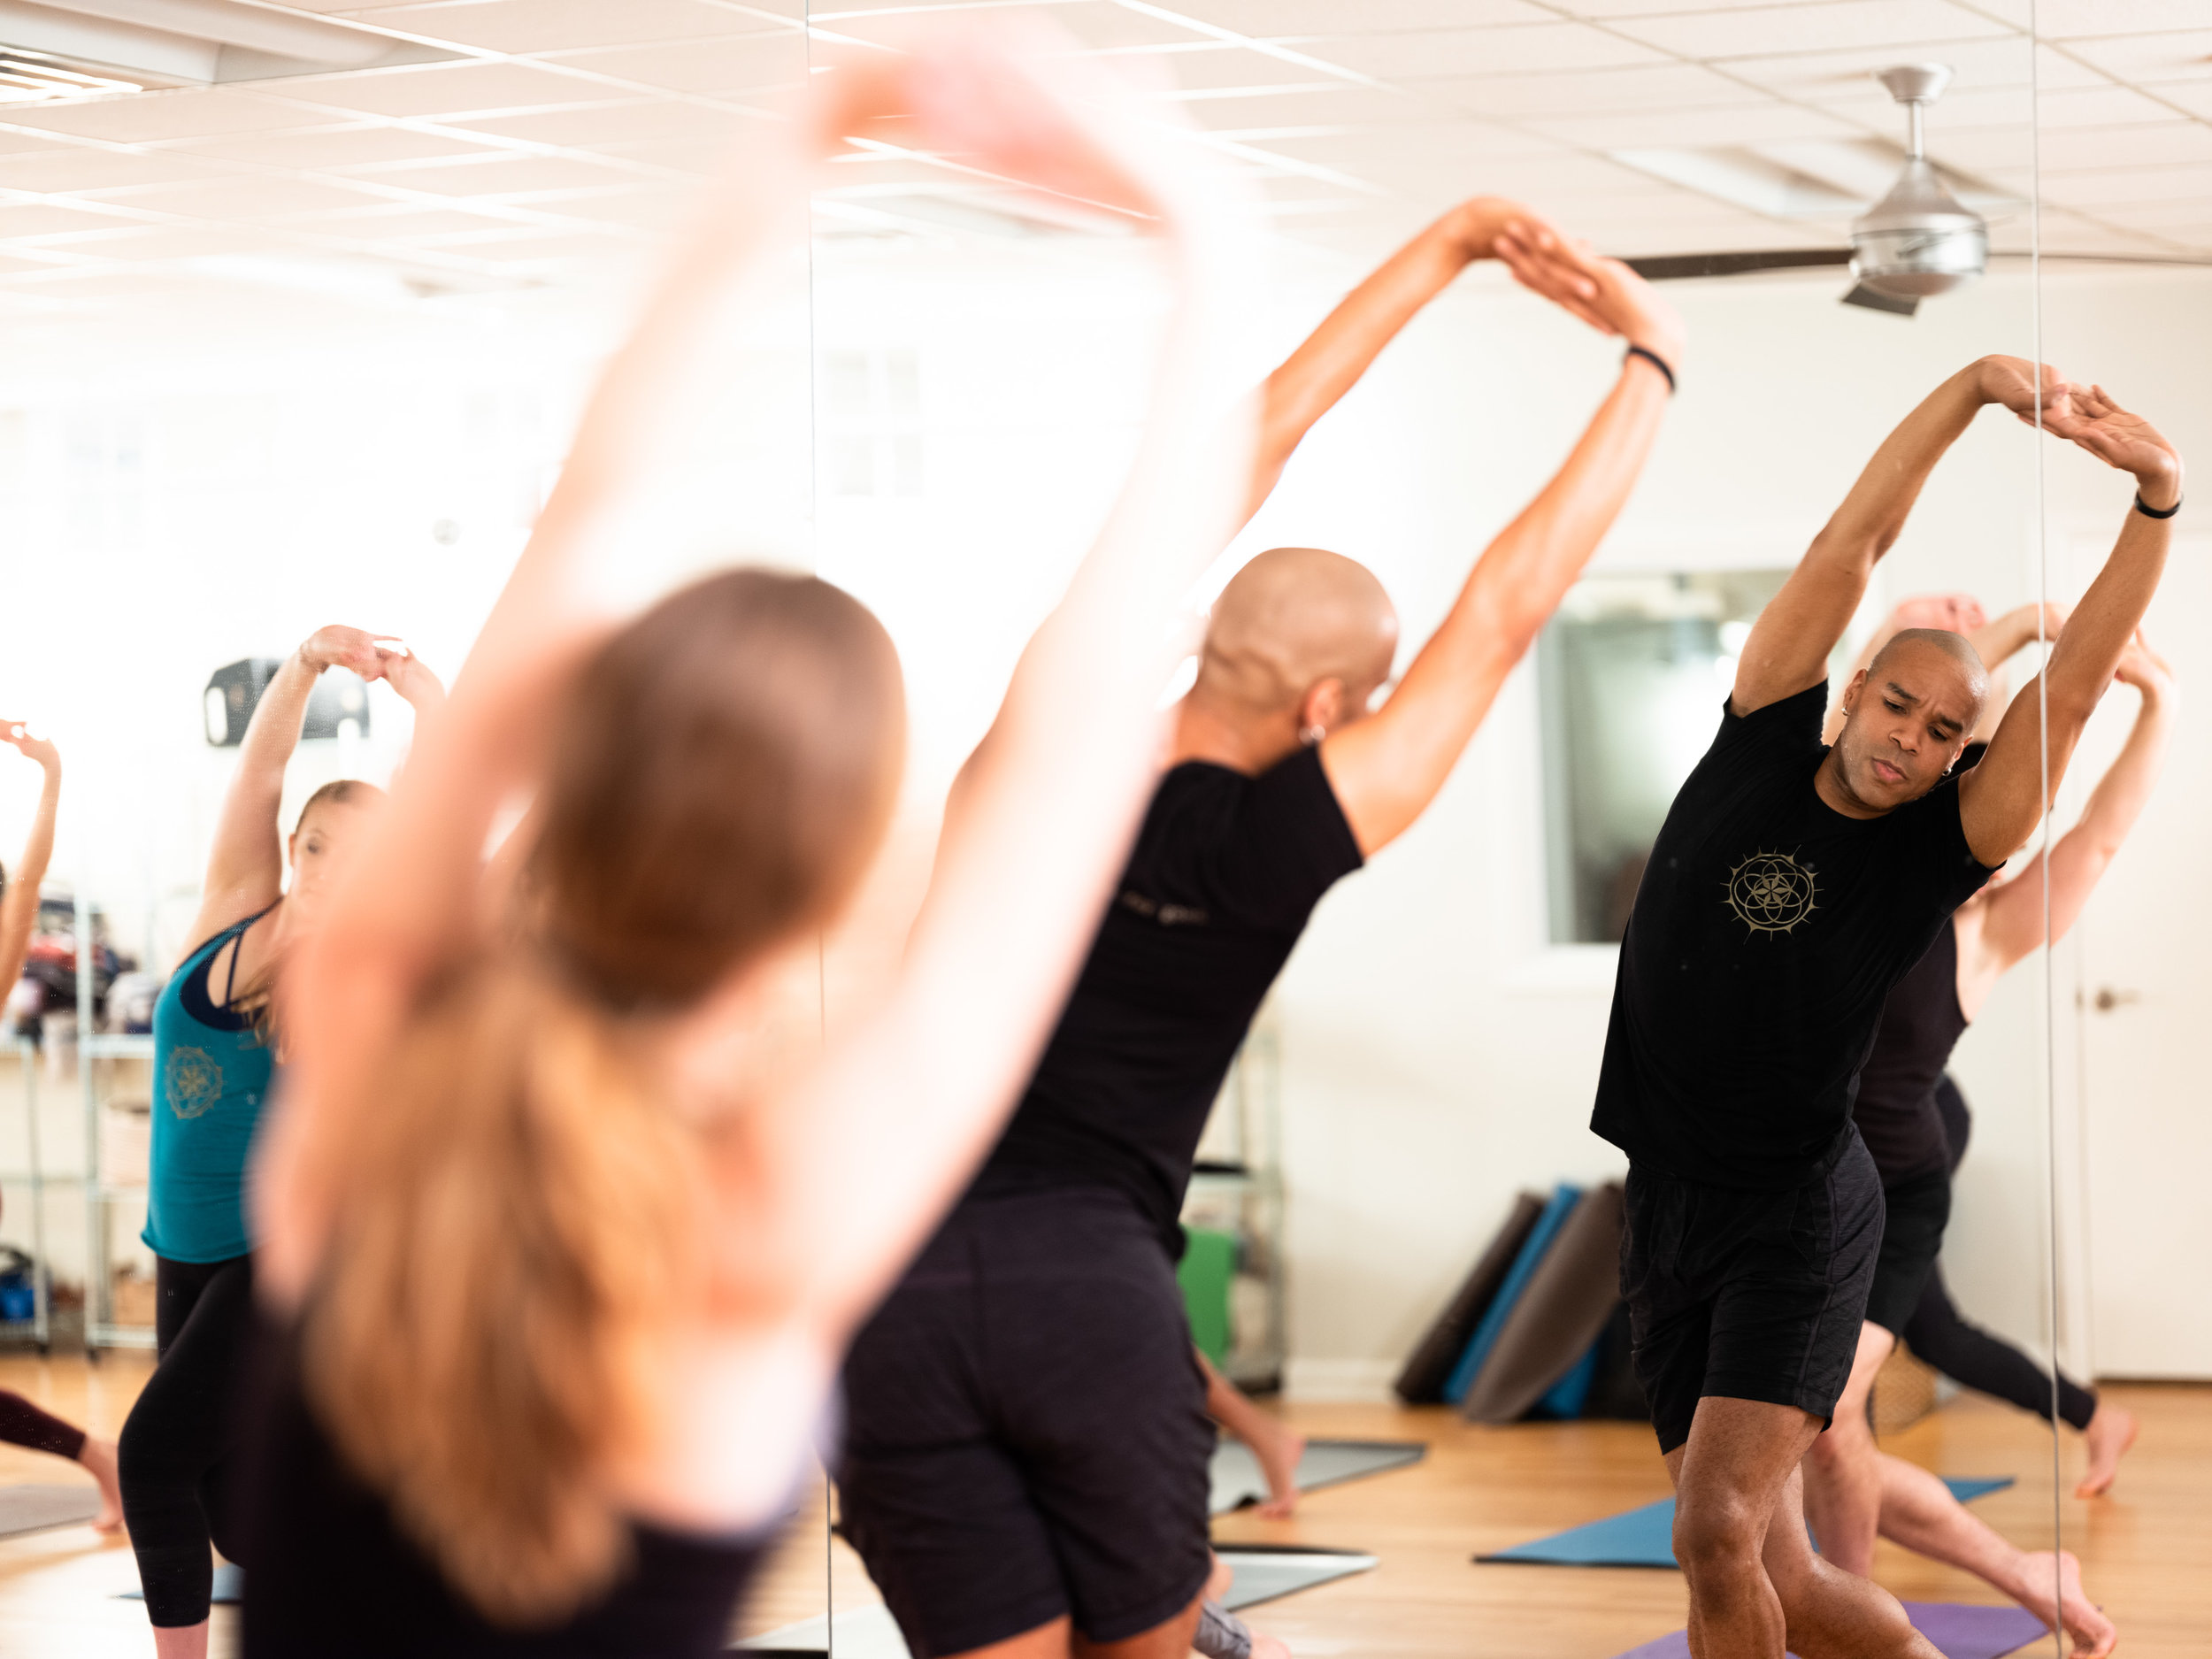 bodyART™ - bodyART™ is a high energy movement class combining yoga, Pilates, dance and martial arts. The class is done barefoot on a mat. Come prepared to move to inspiring music and to sweat!